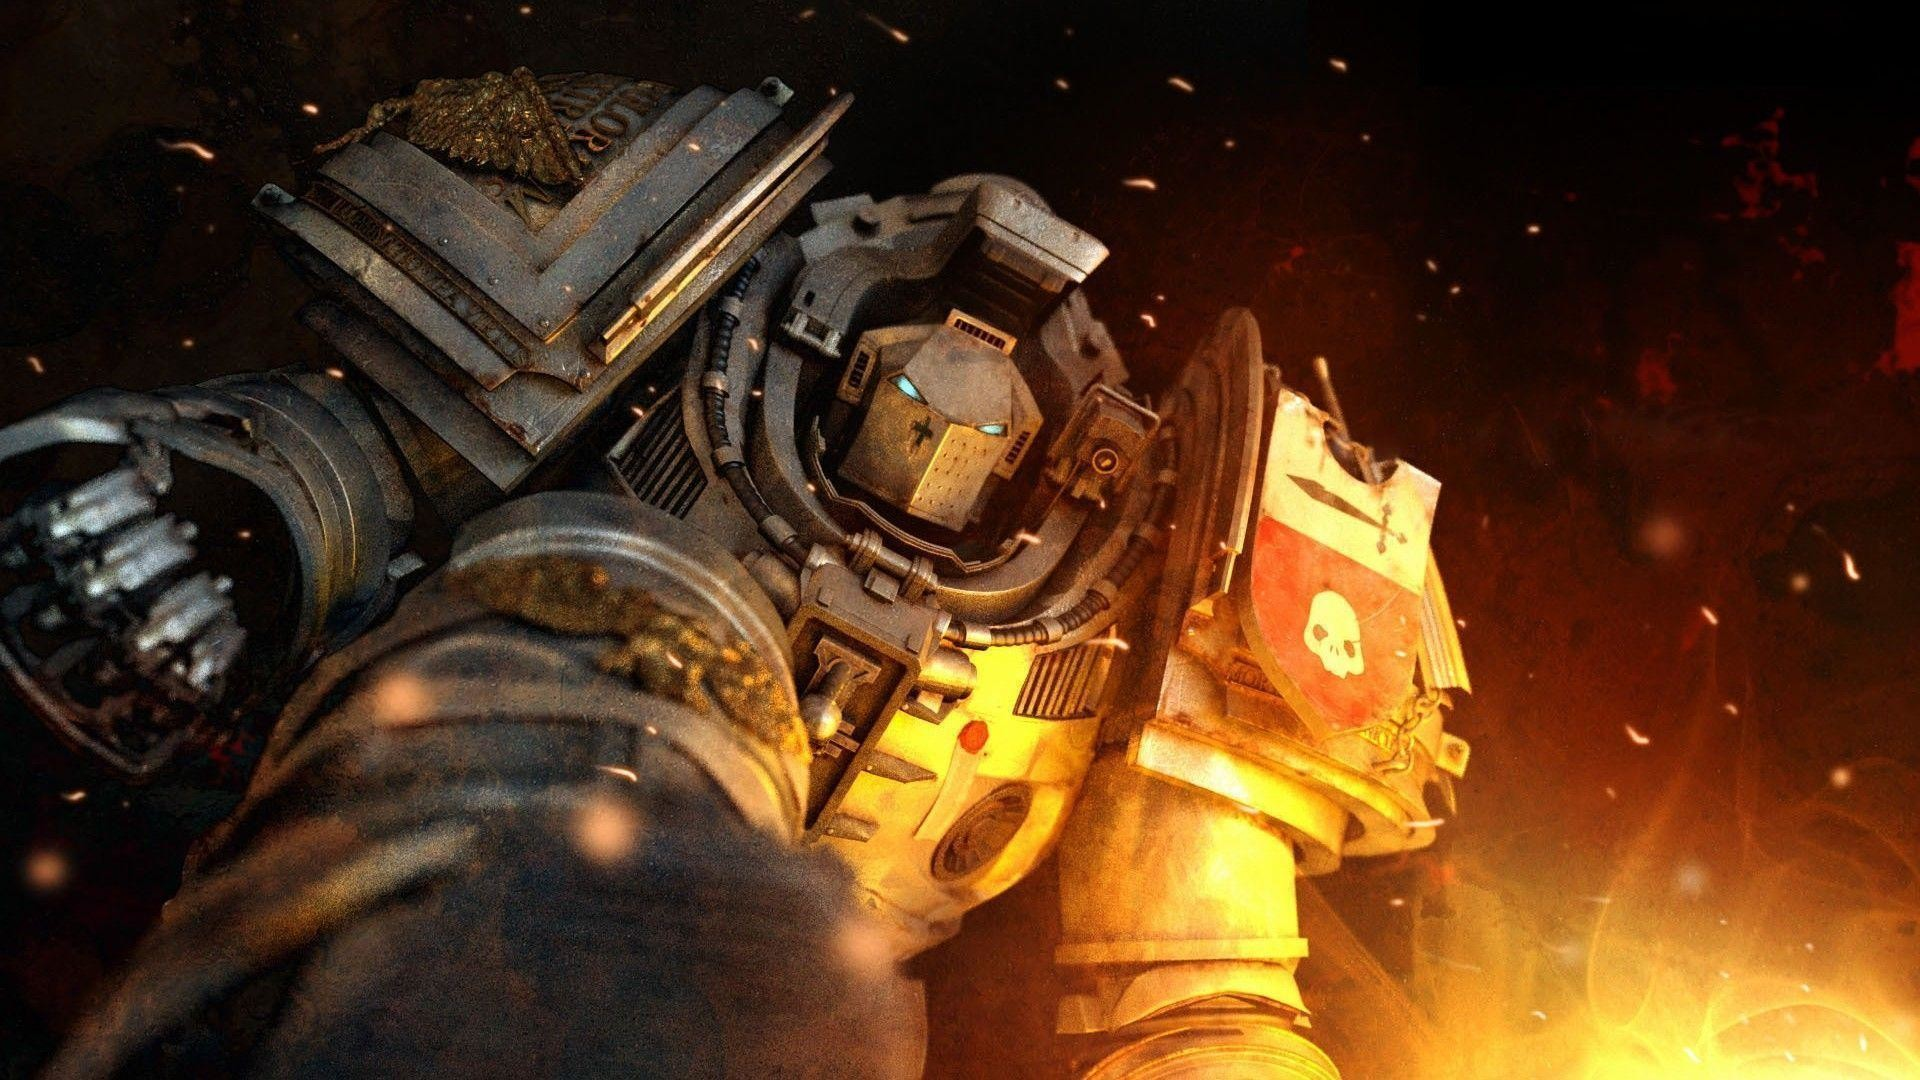 1920x1080 Imperial Fists <b>Space Marine</b> HD <b>Wallpaper